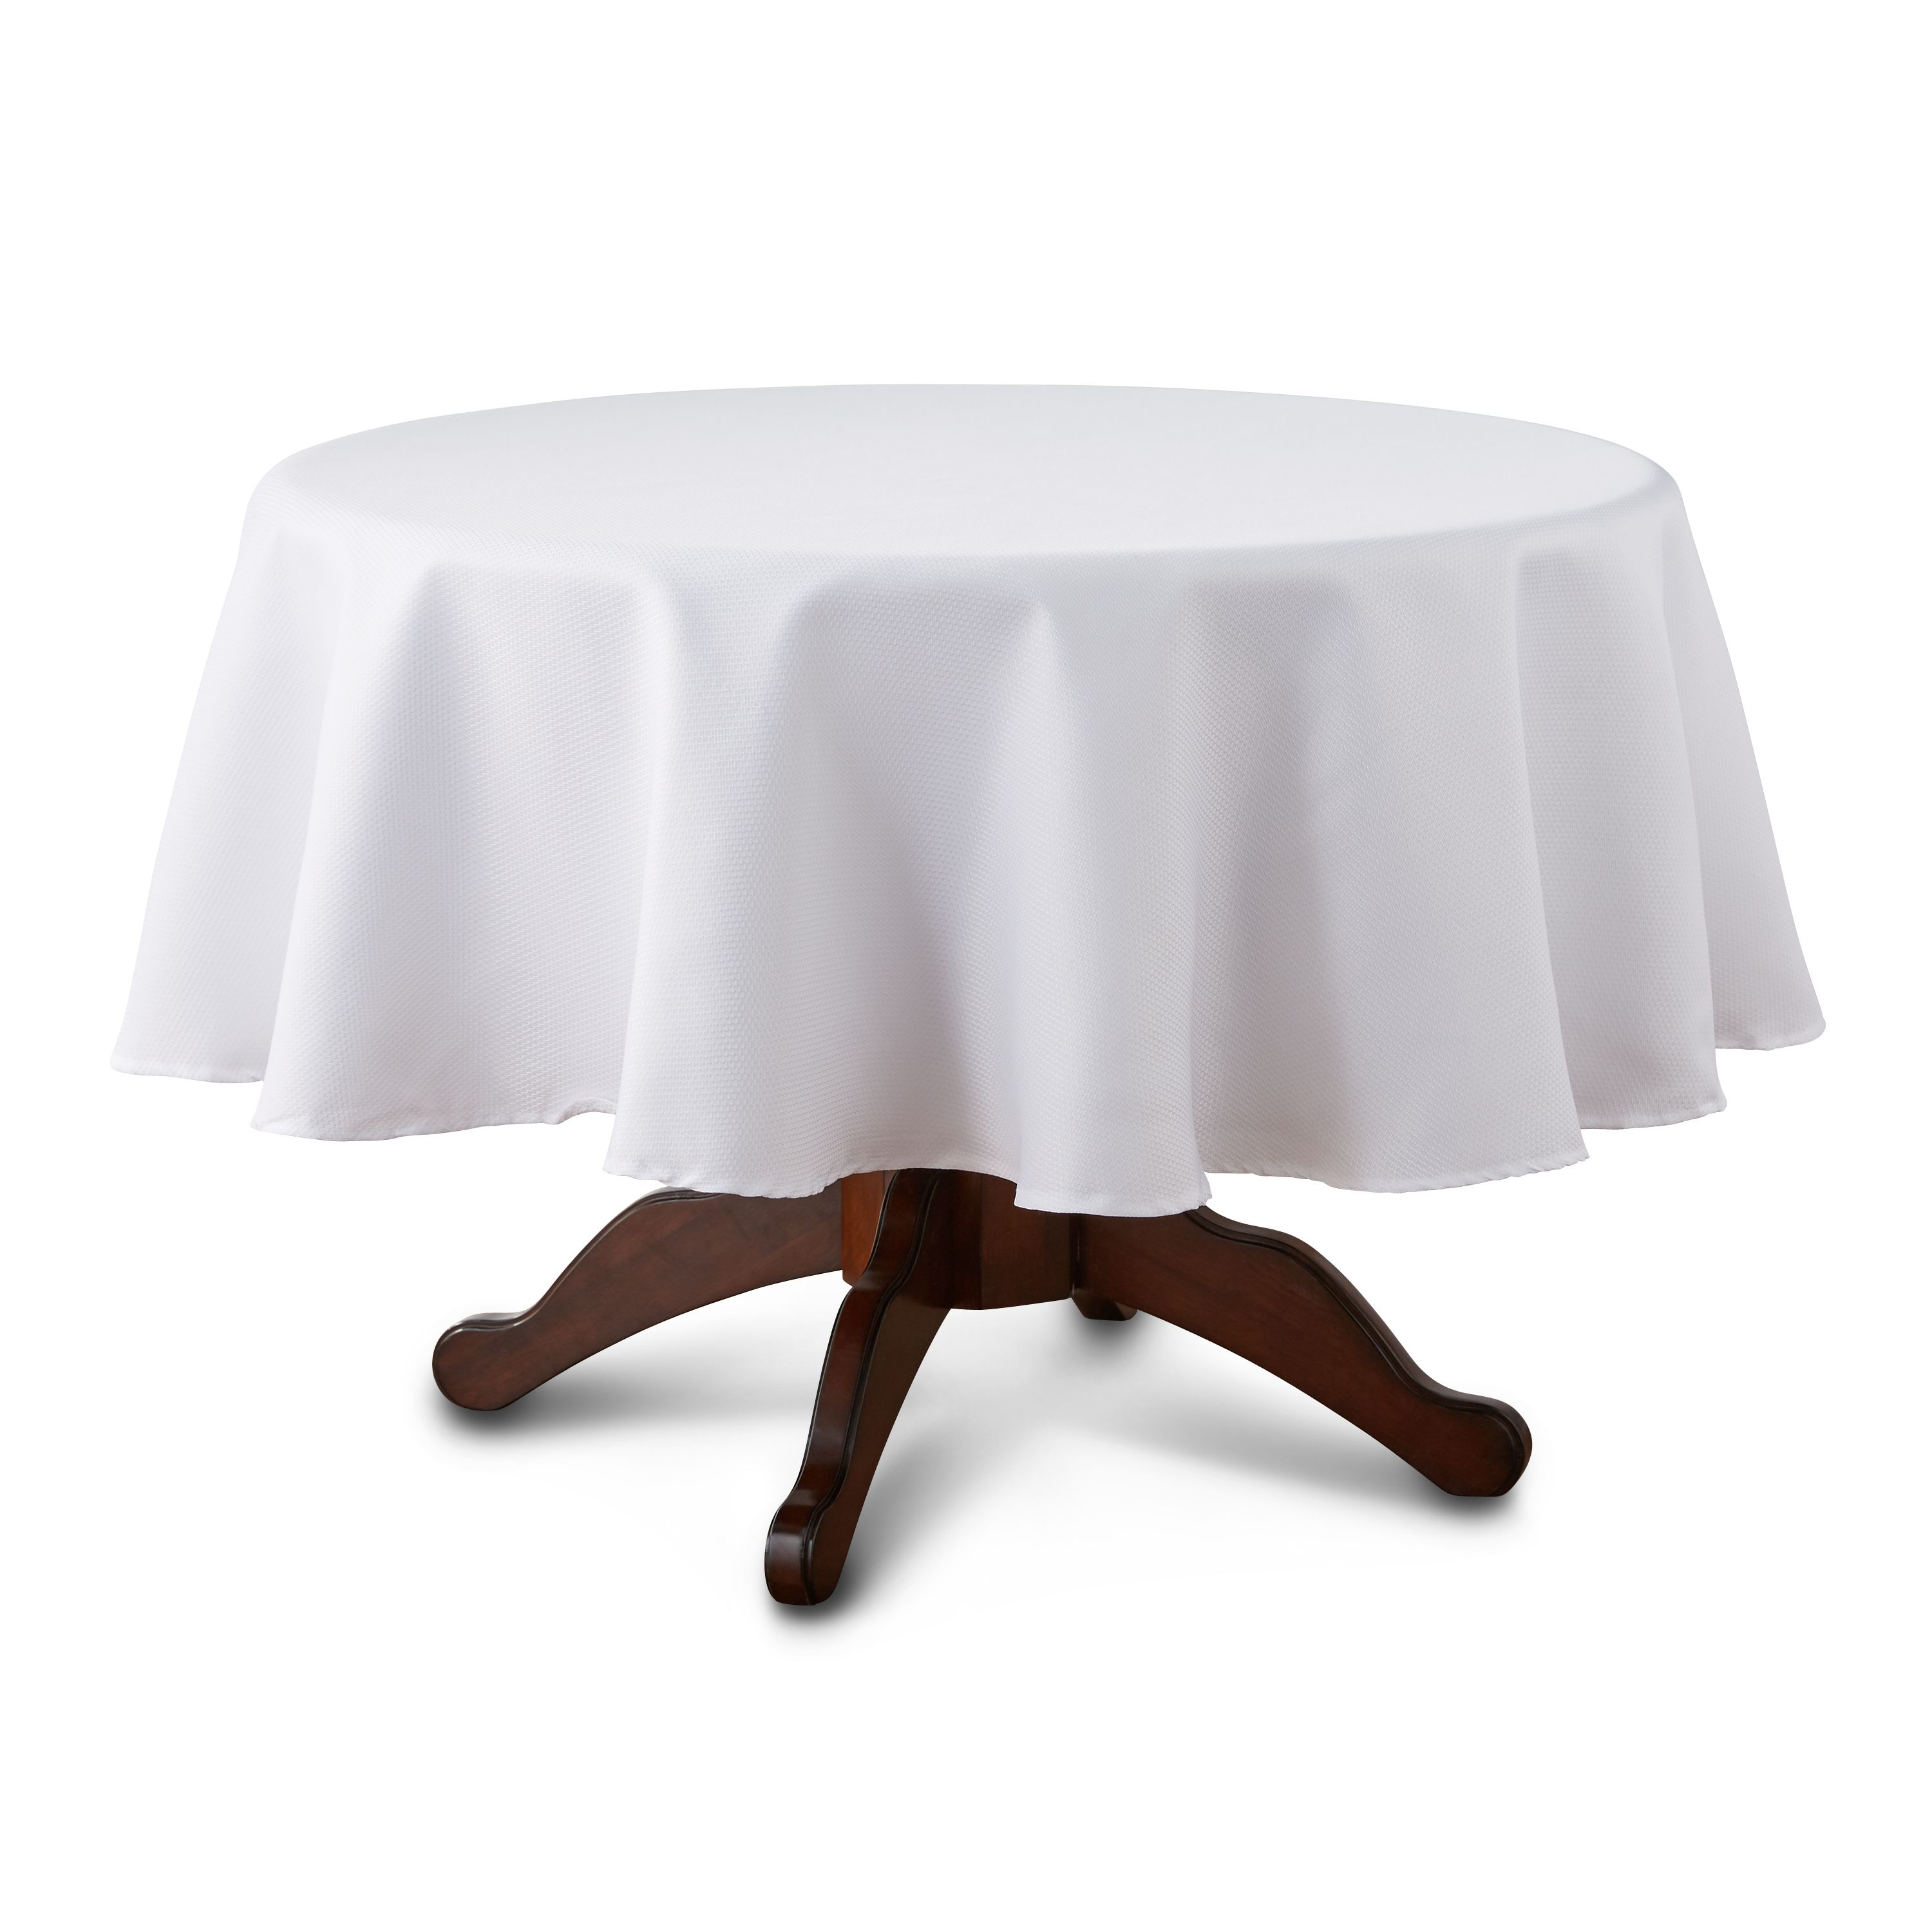 Mainstays Fraser Fabric Tablecloth 70 Round Arctic White Available In Multiple Colors And Sizes Walmart Com Tablecloth Fabric Table Cloth Mainstays